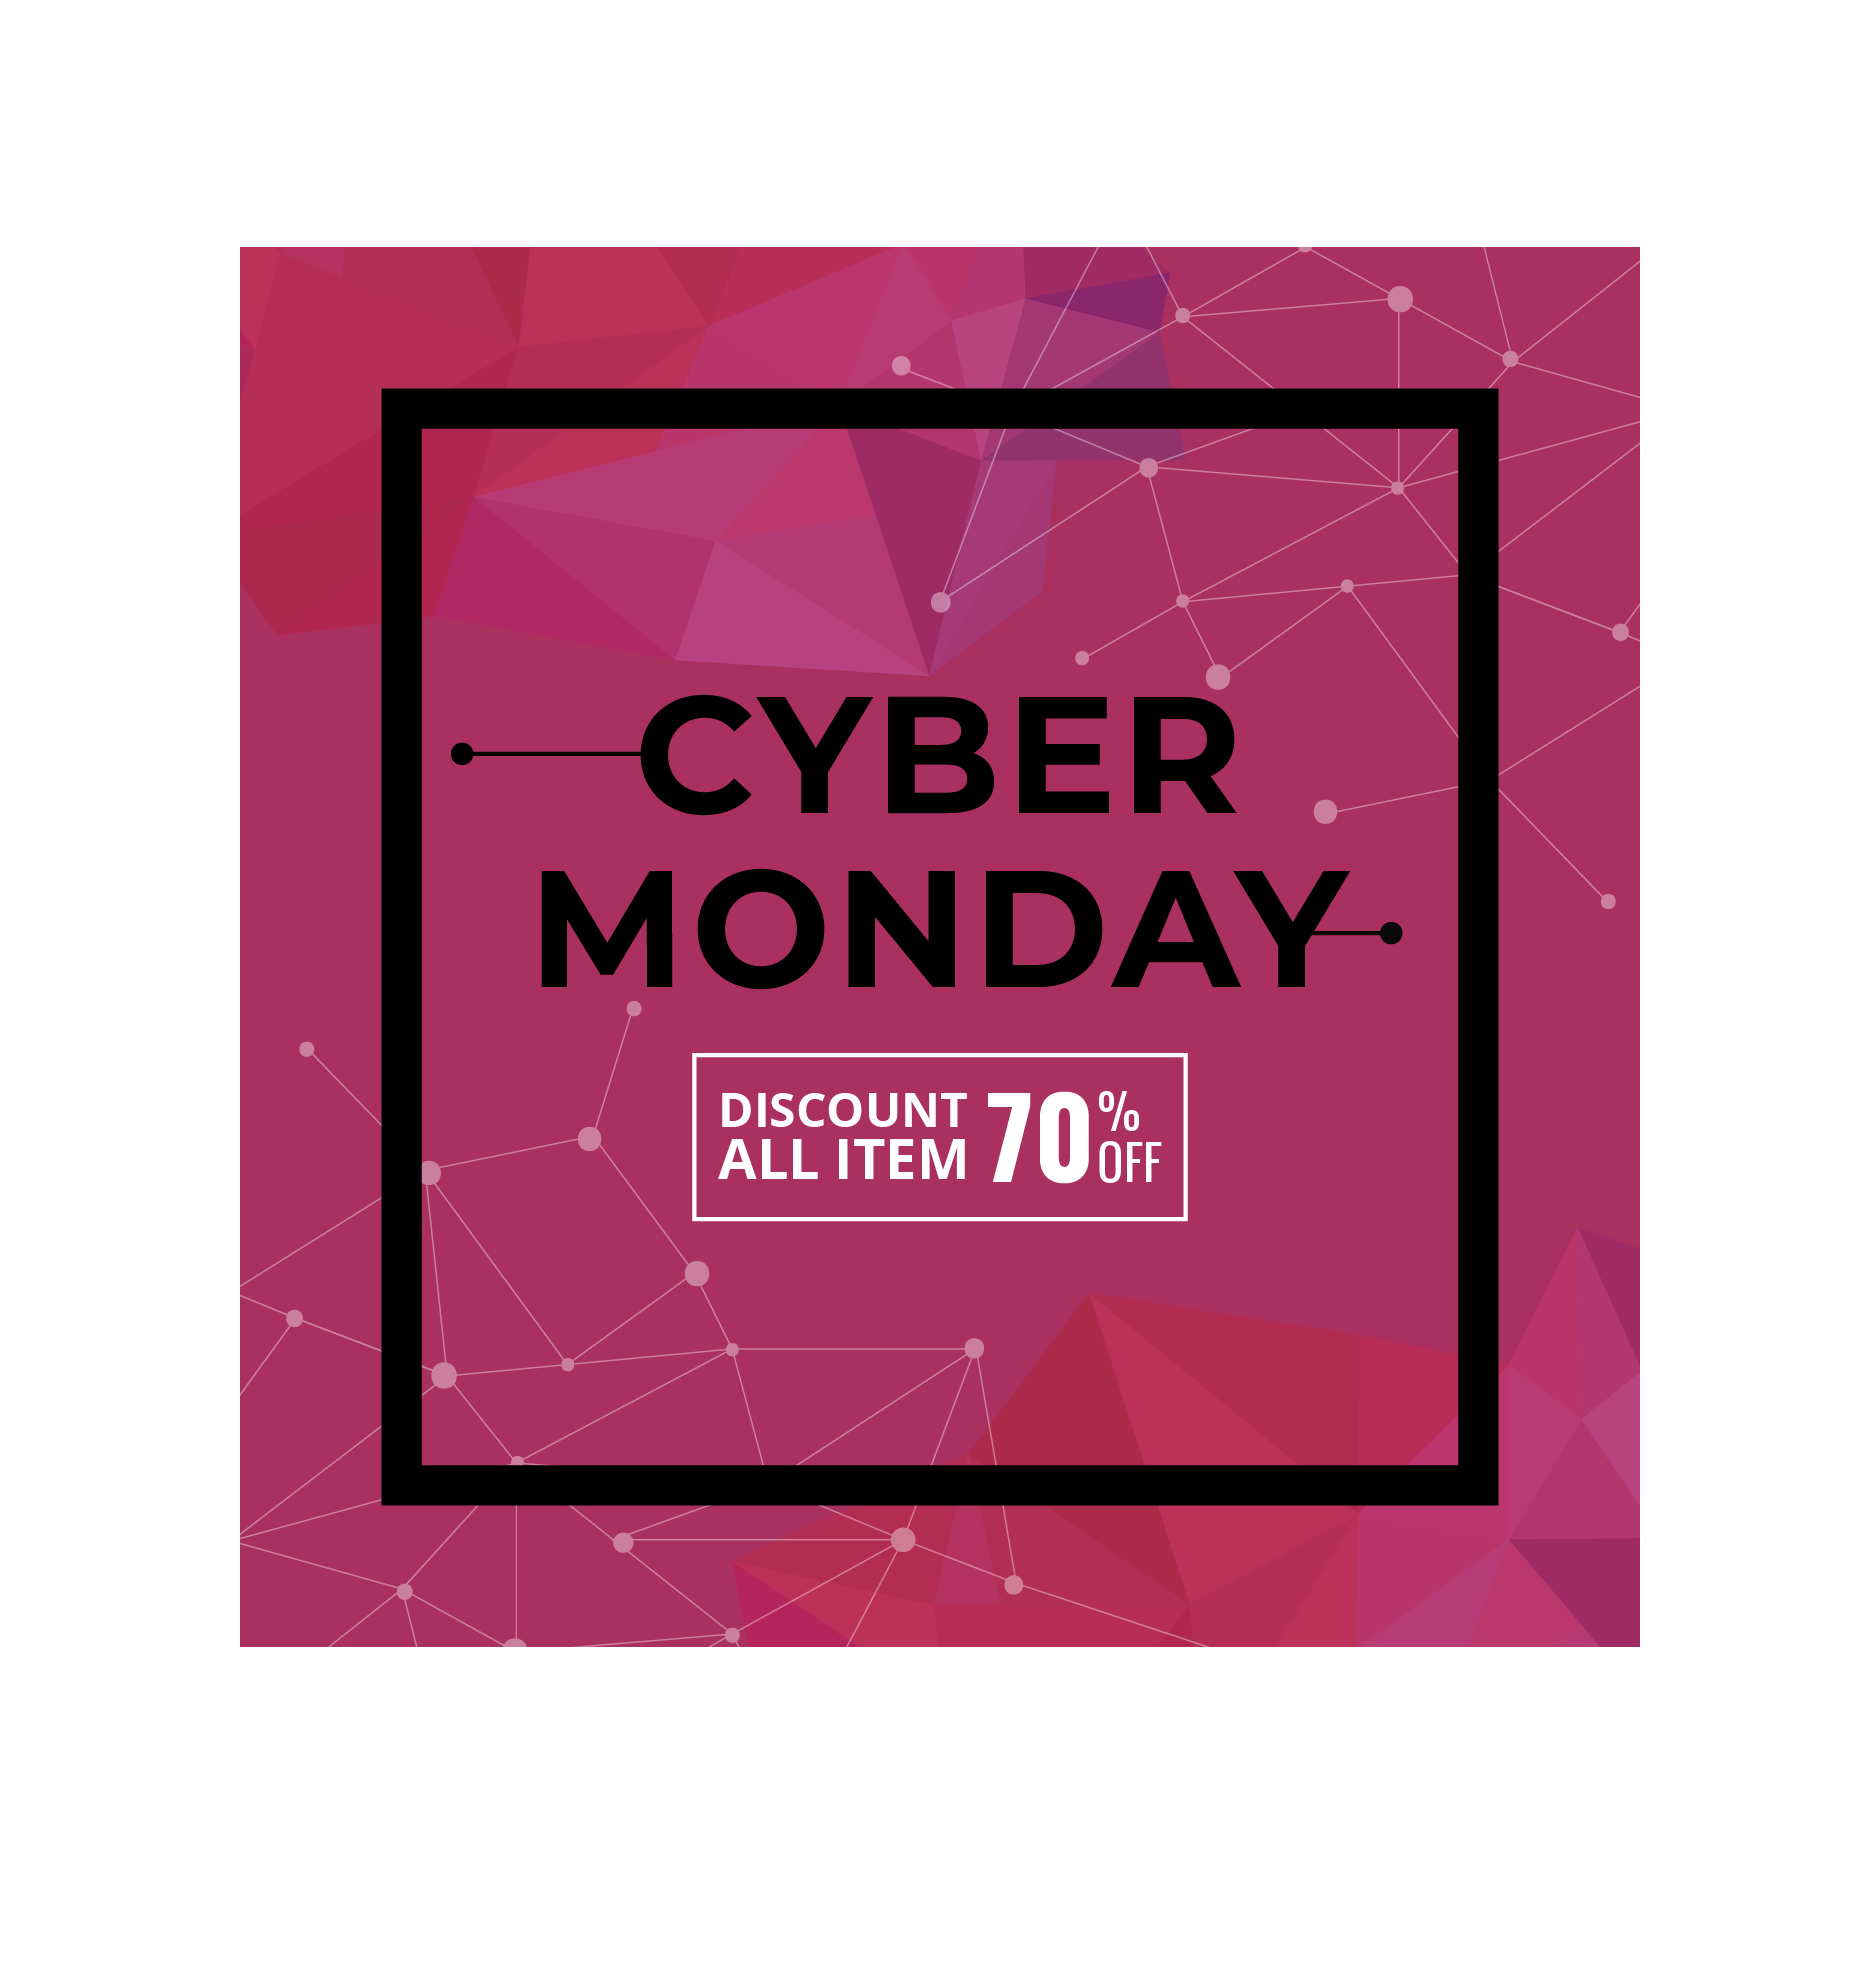 Cyber Monday Social Media Post.png